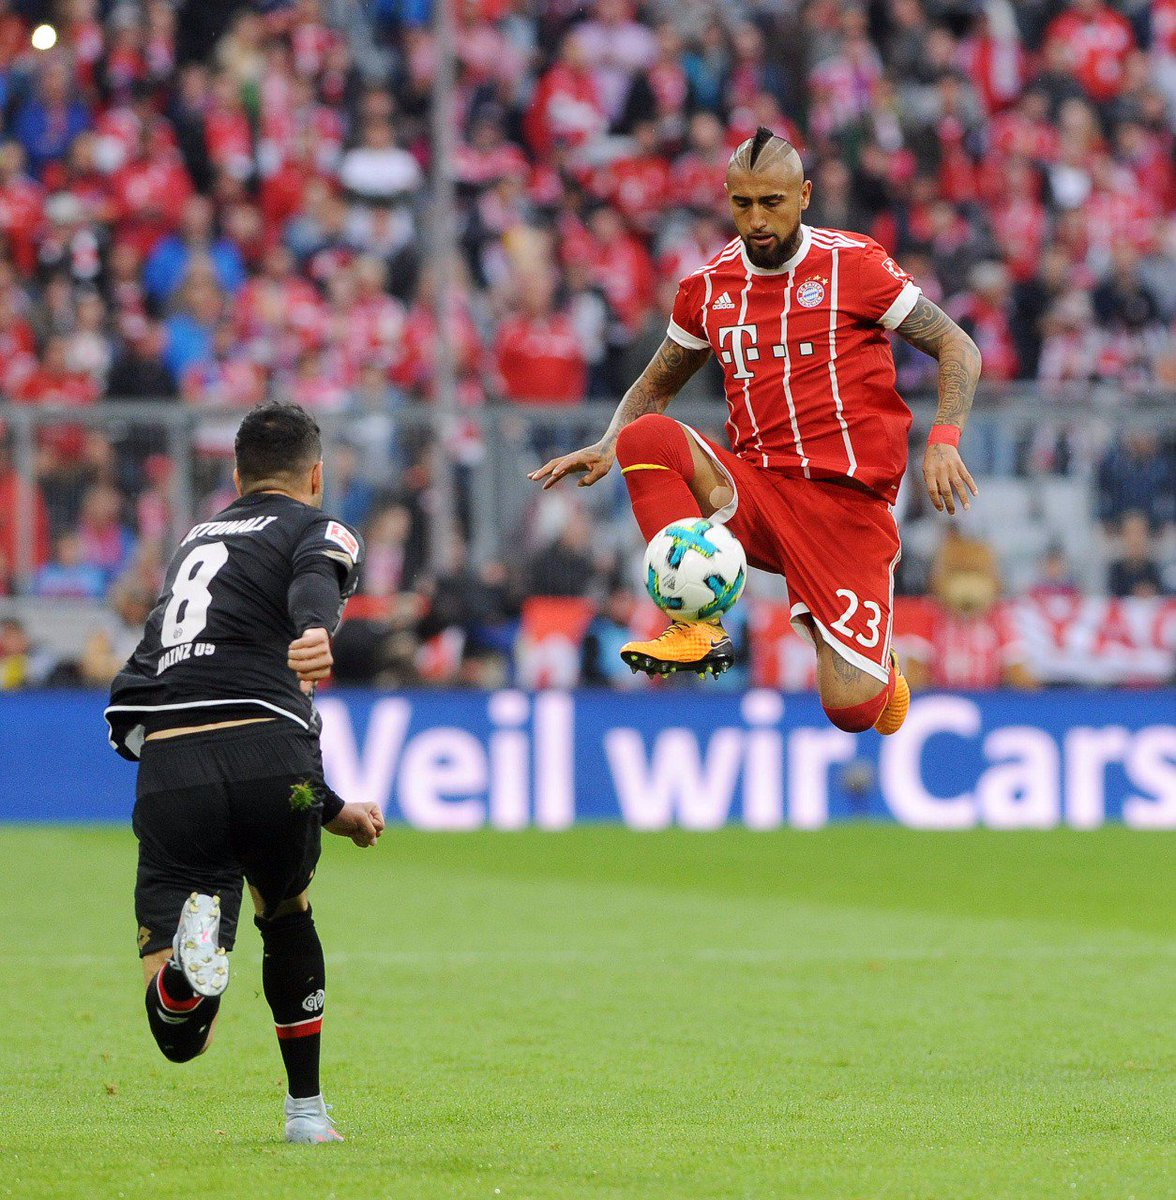 Bayern Munich vs Mainz 05 Highlights